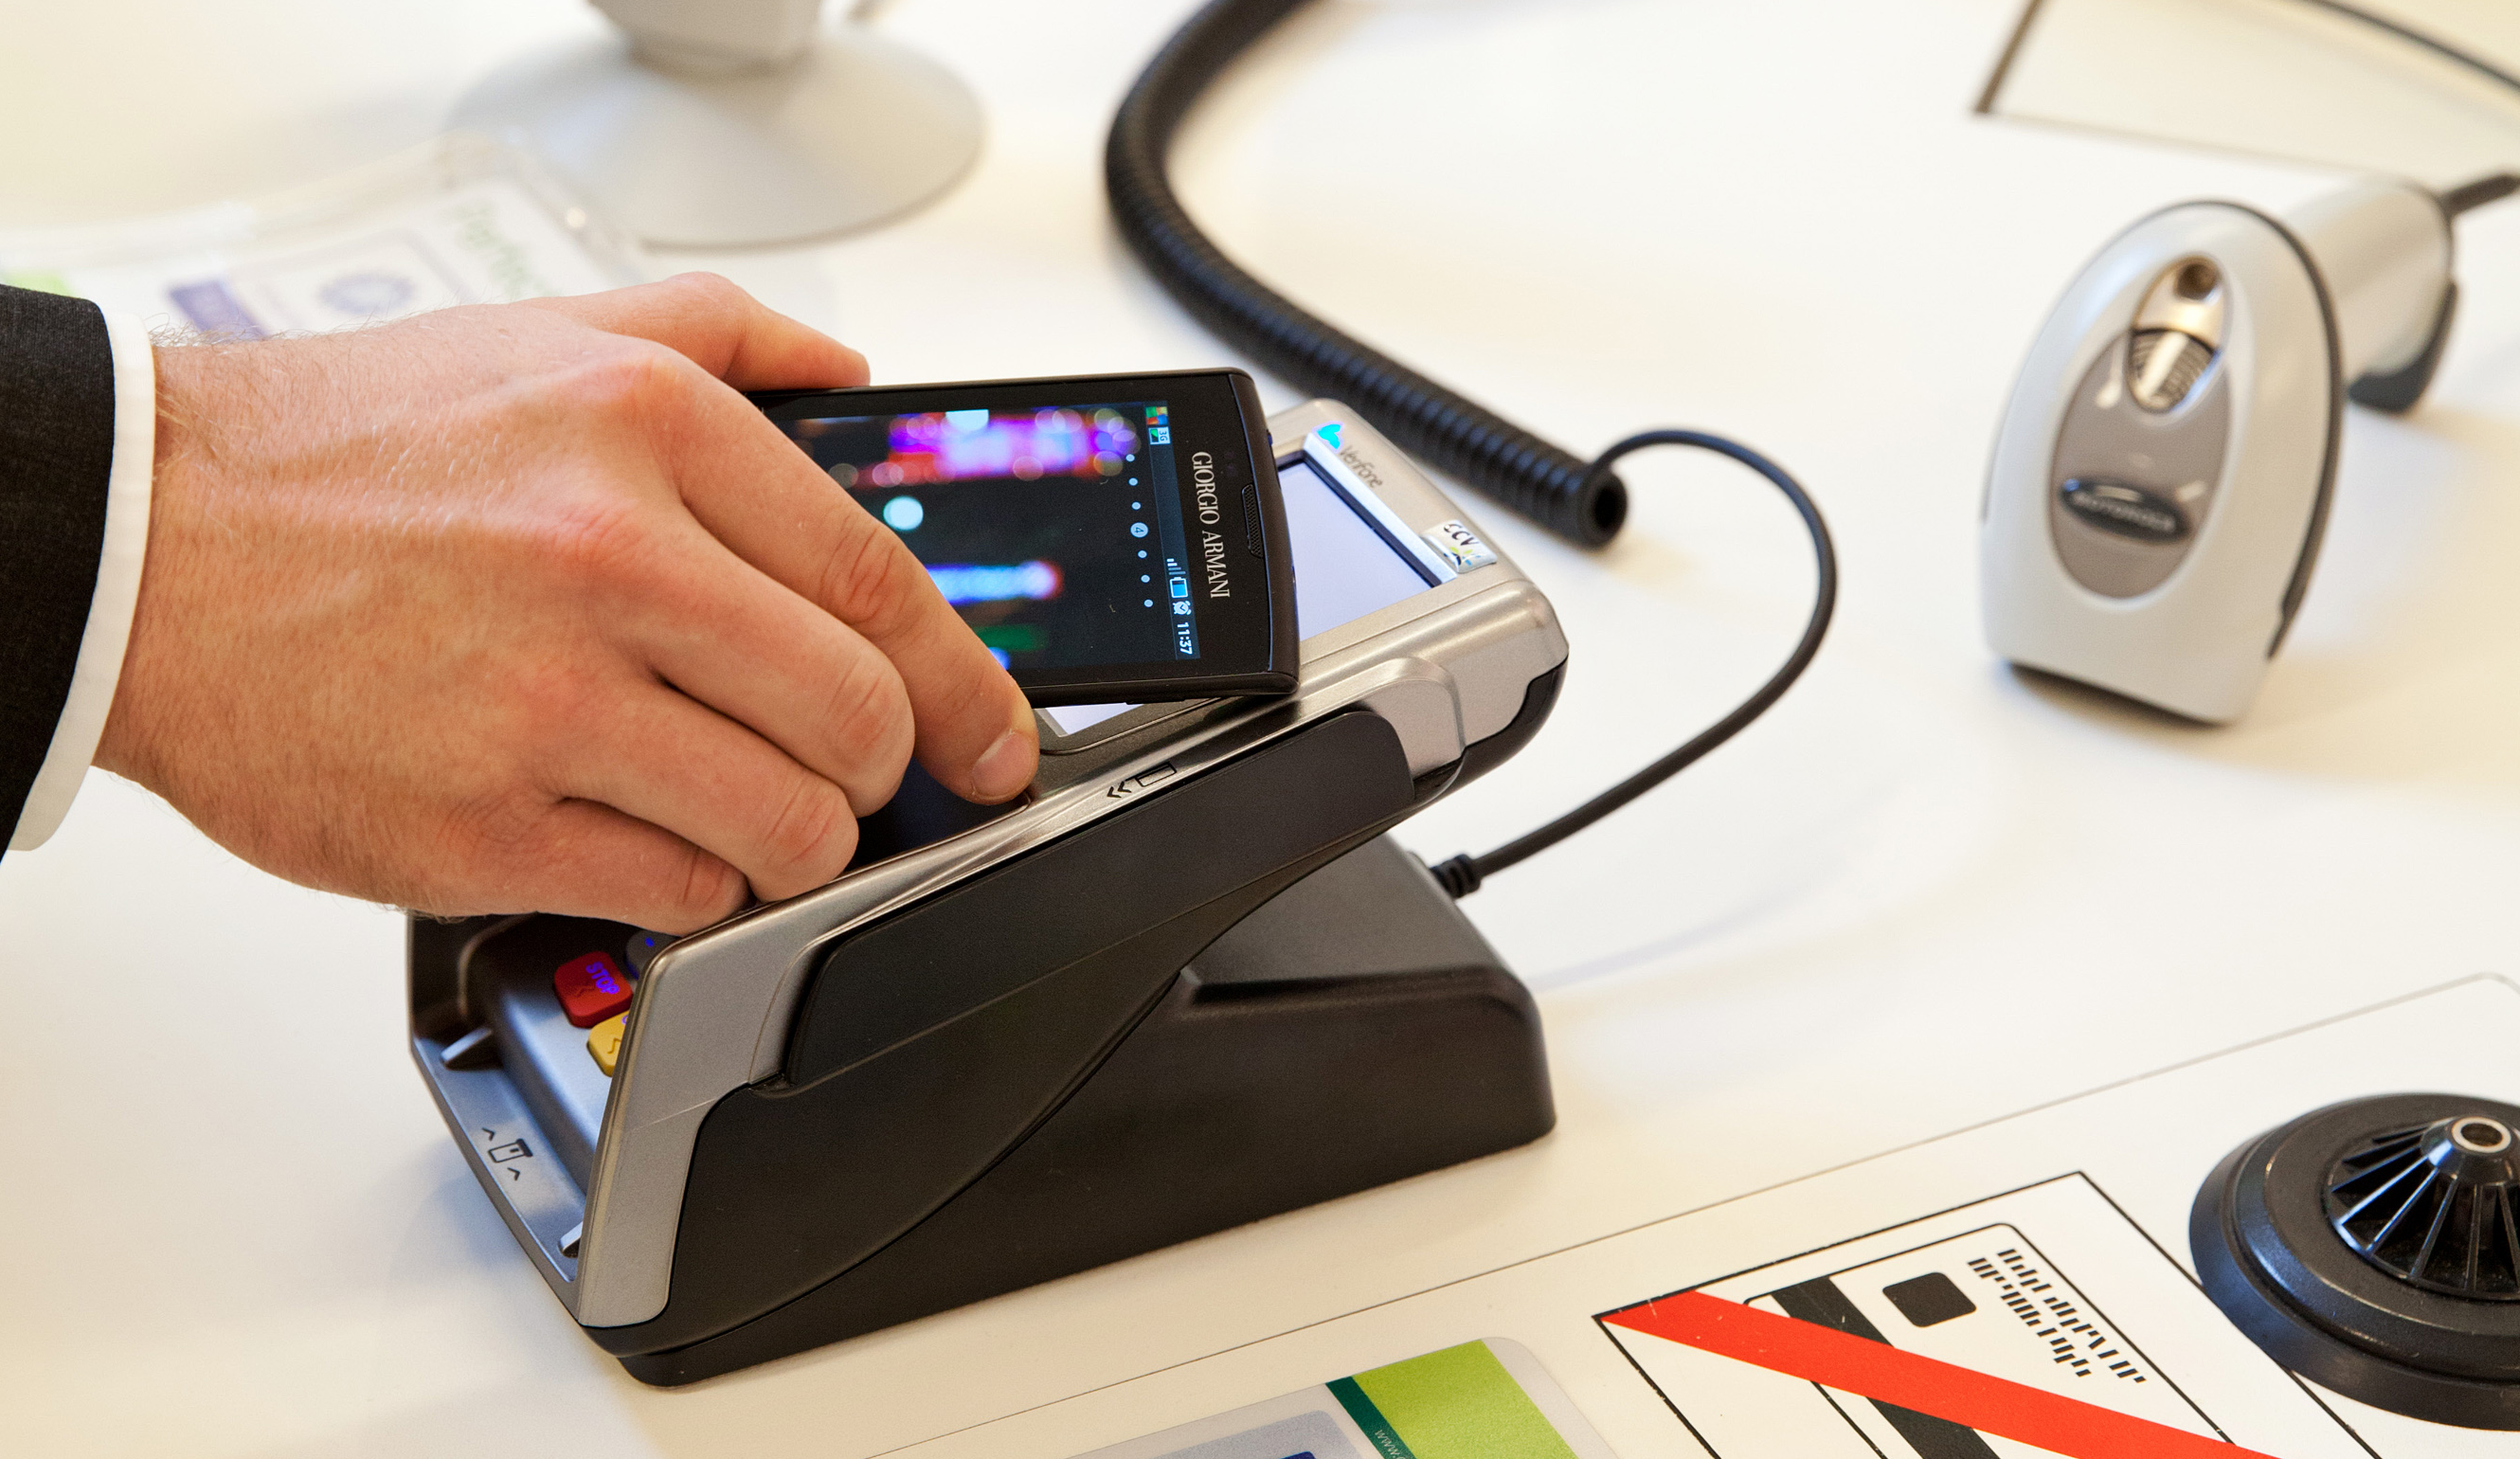 Smartphone mobile payment